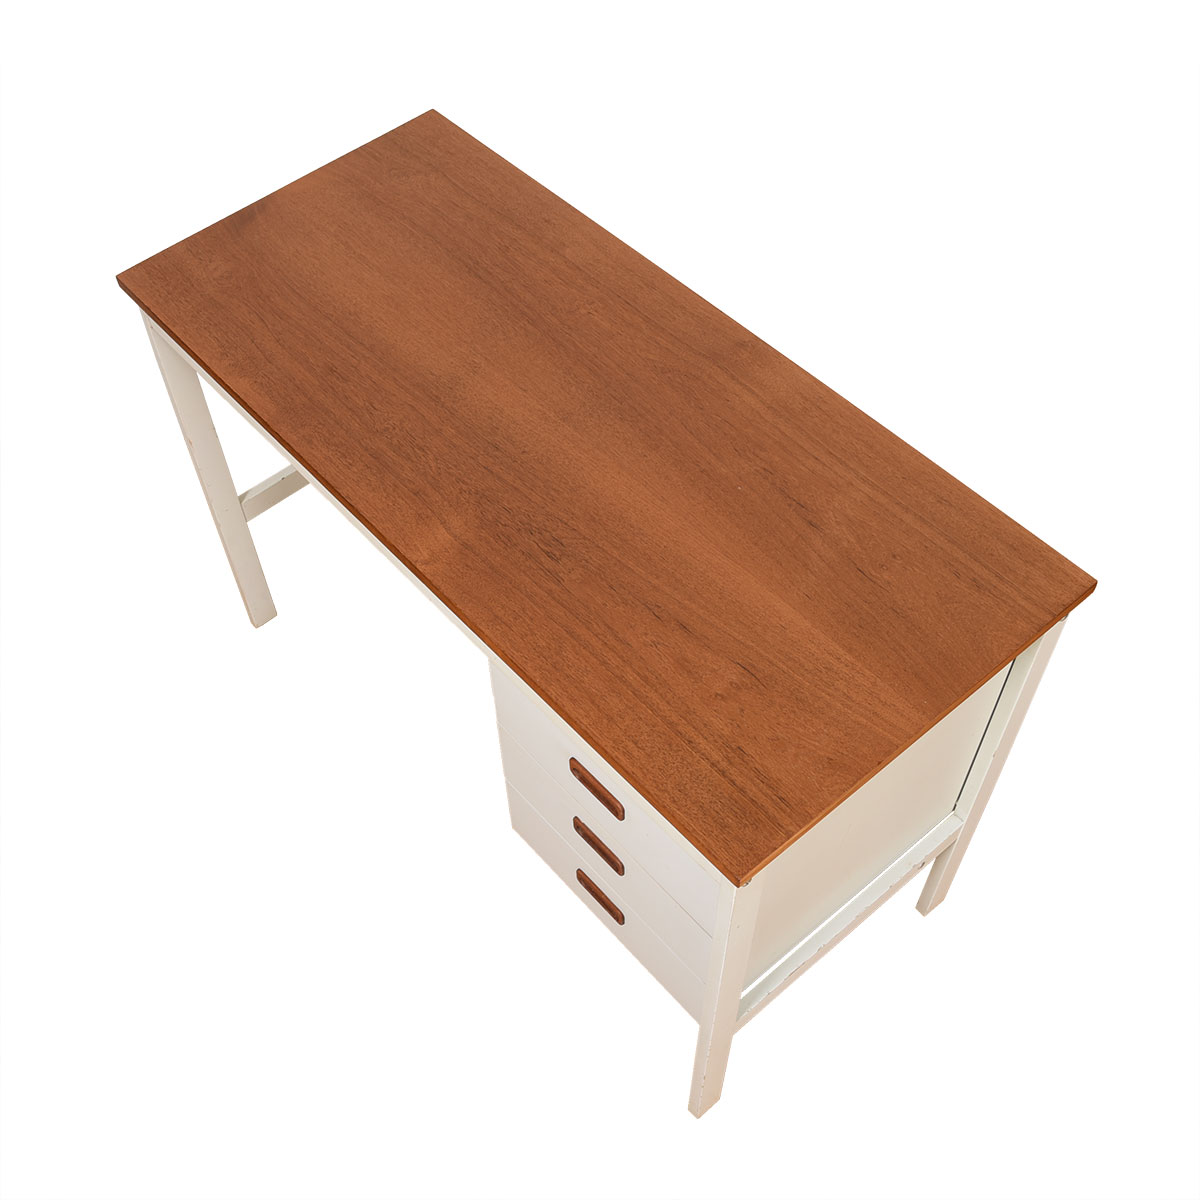 Apartment Sized 1970's Danish Modern Teak & White Desk.